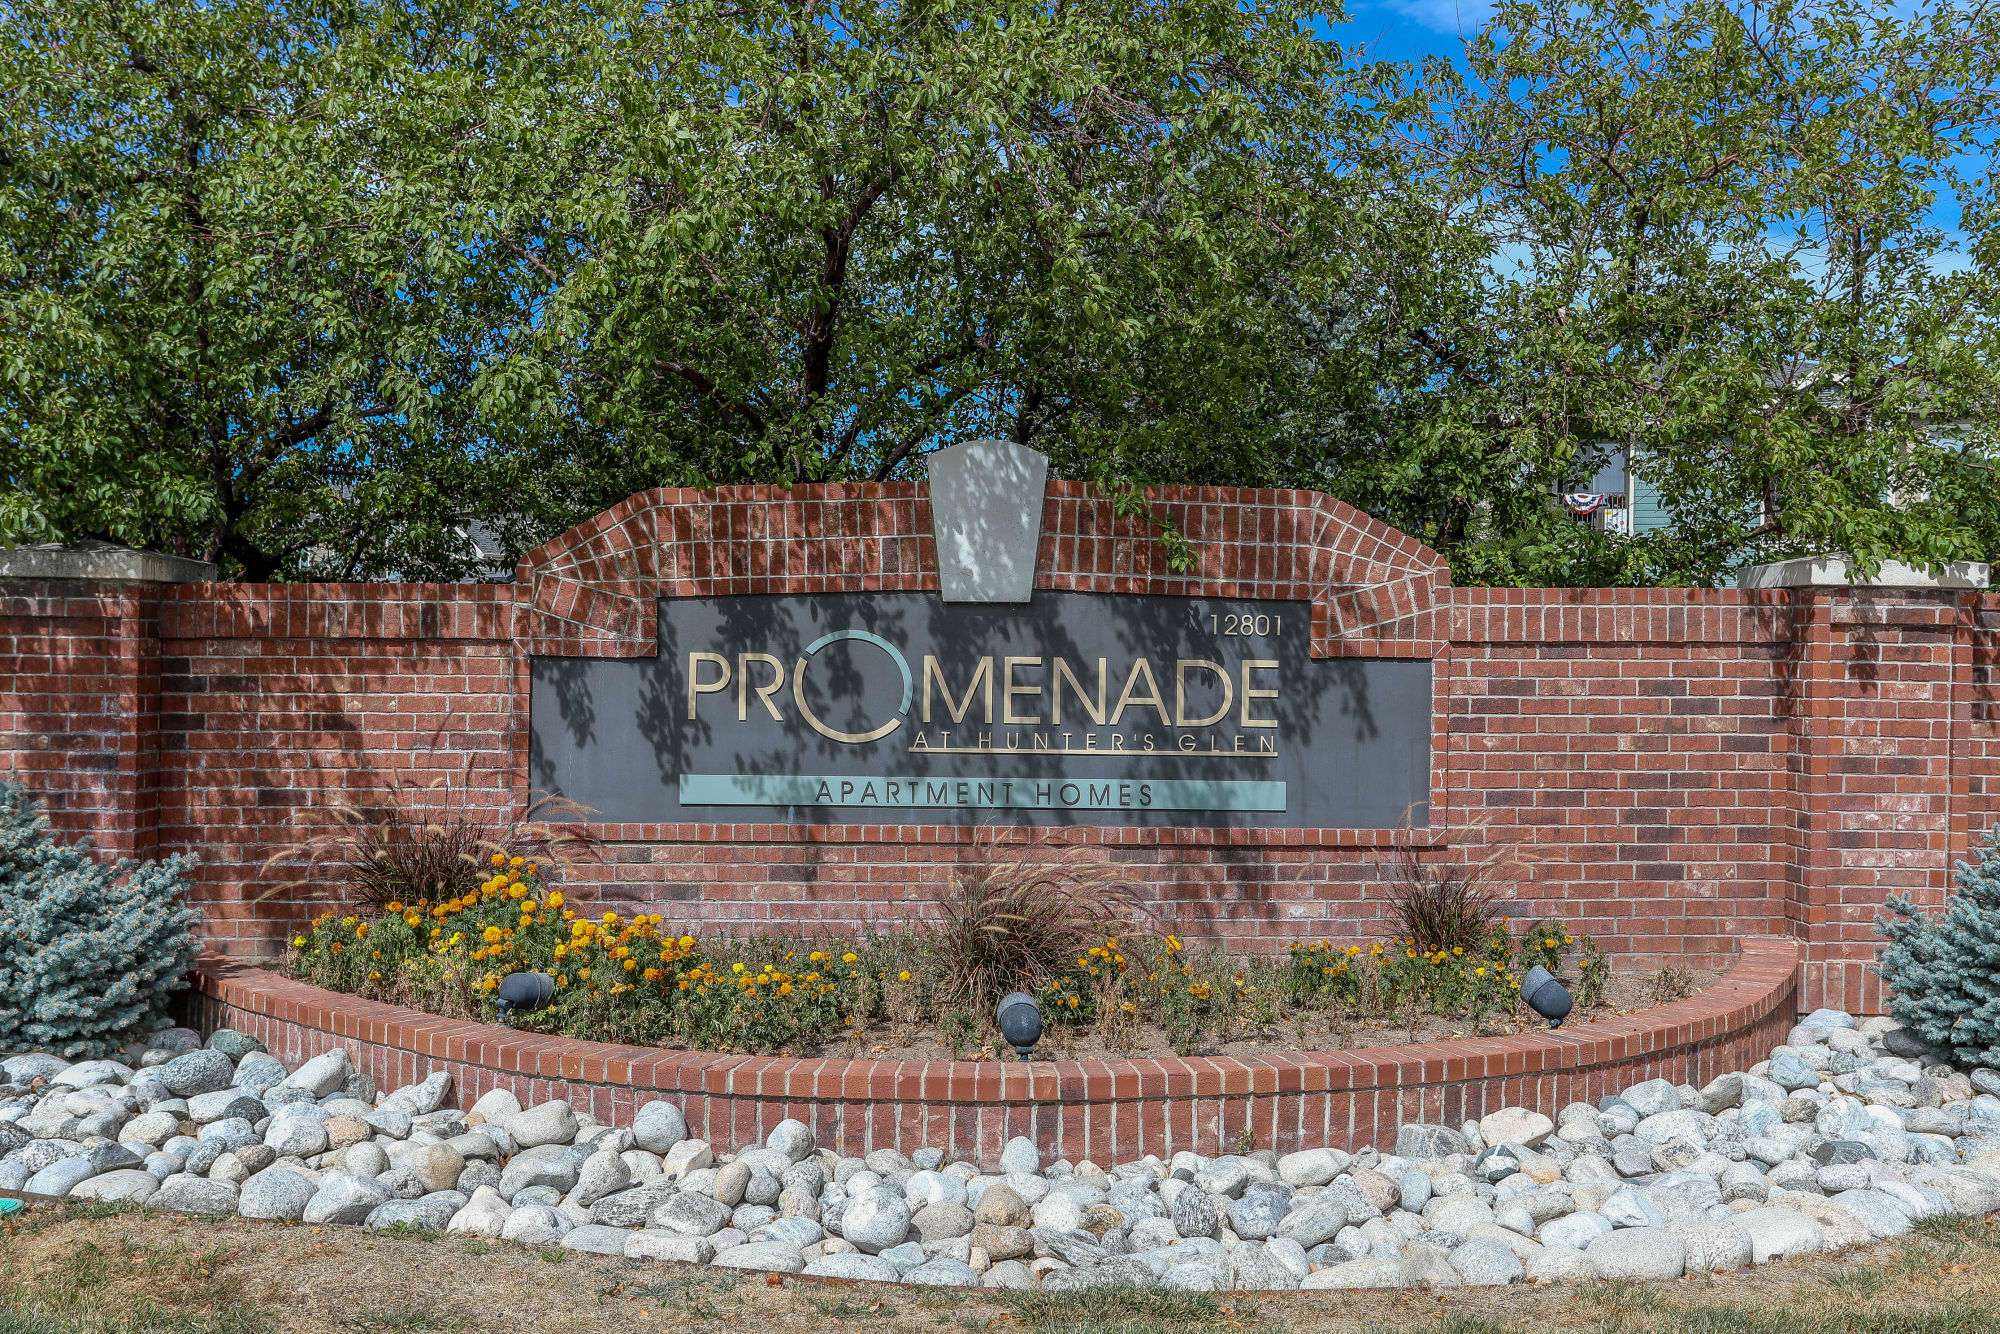 Monument sign to Promenade at Hunter's Glen Apartments